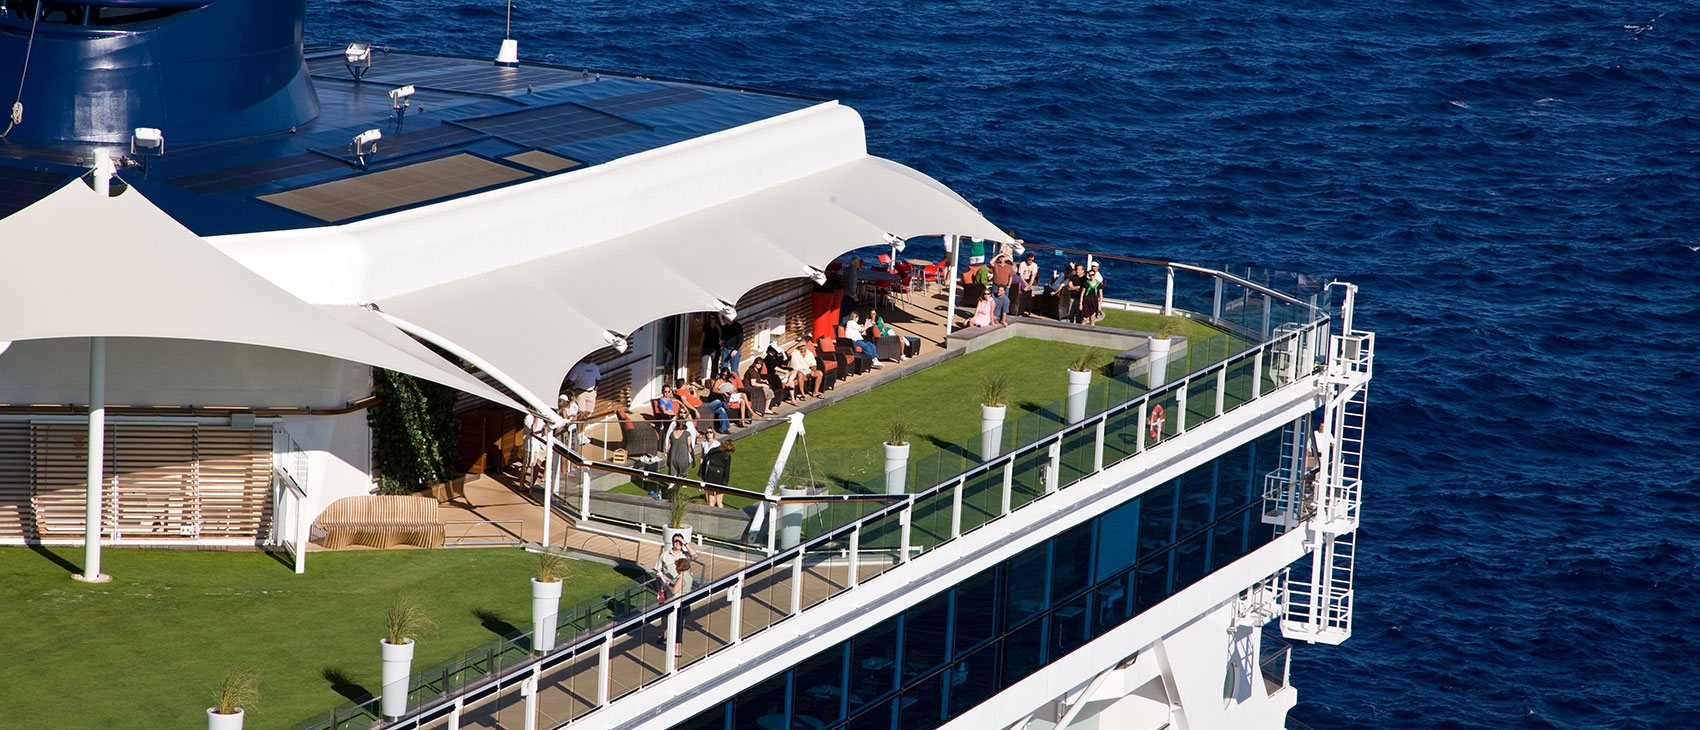 The Lawn Club | Celebrity Cruises